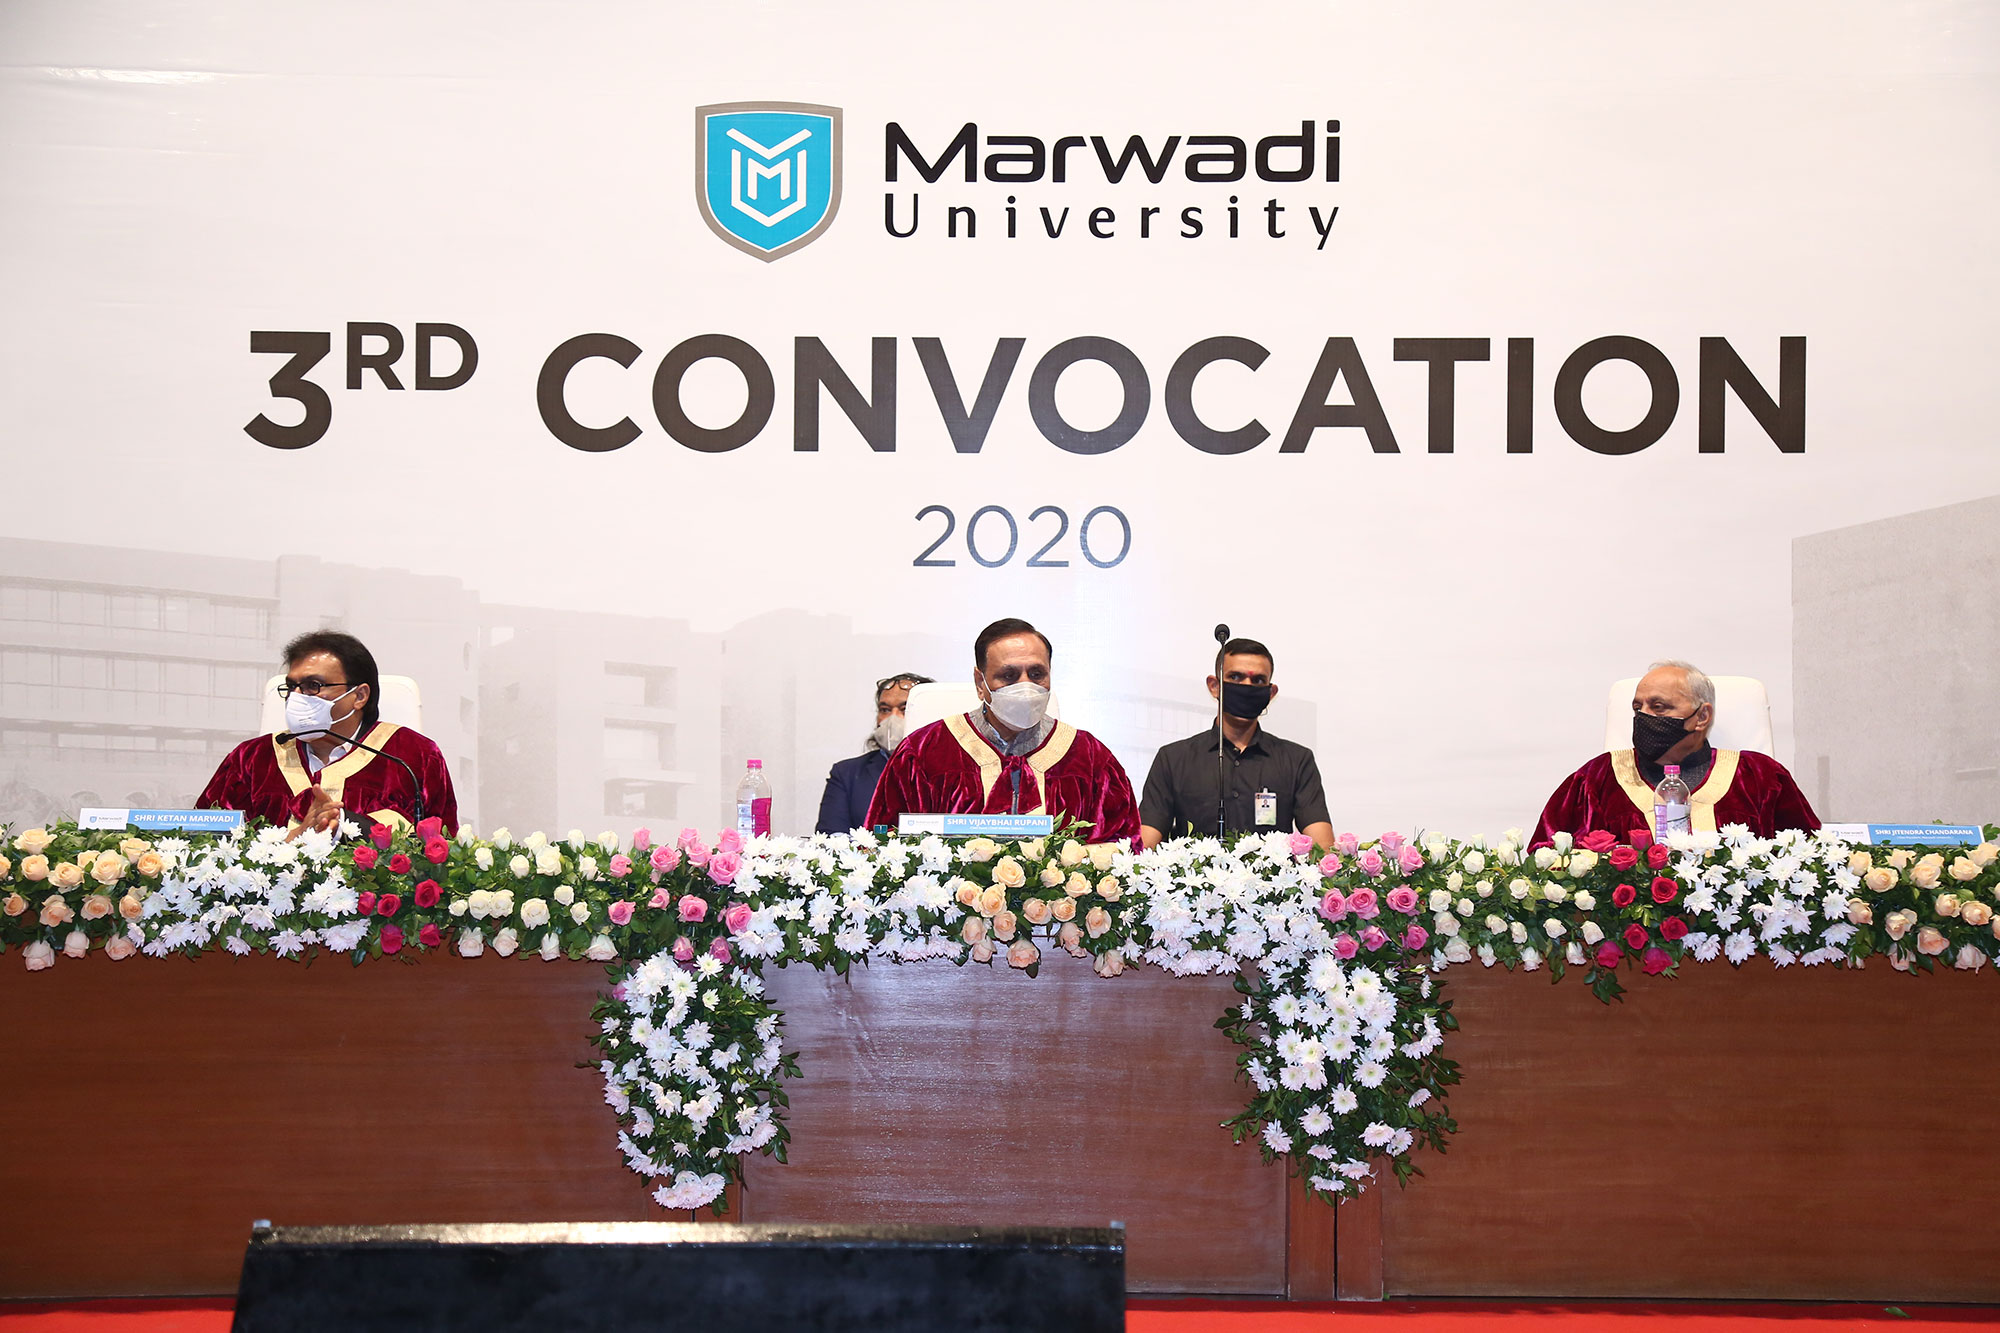 3RD Convocation 2020